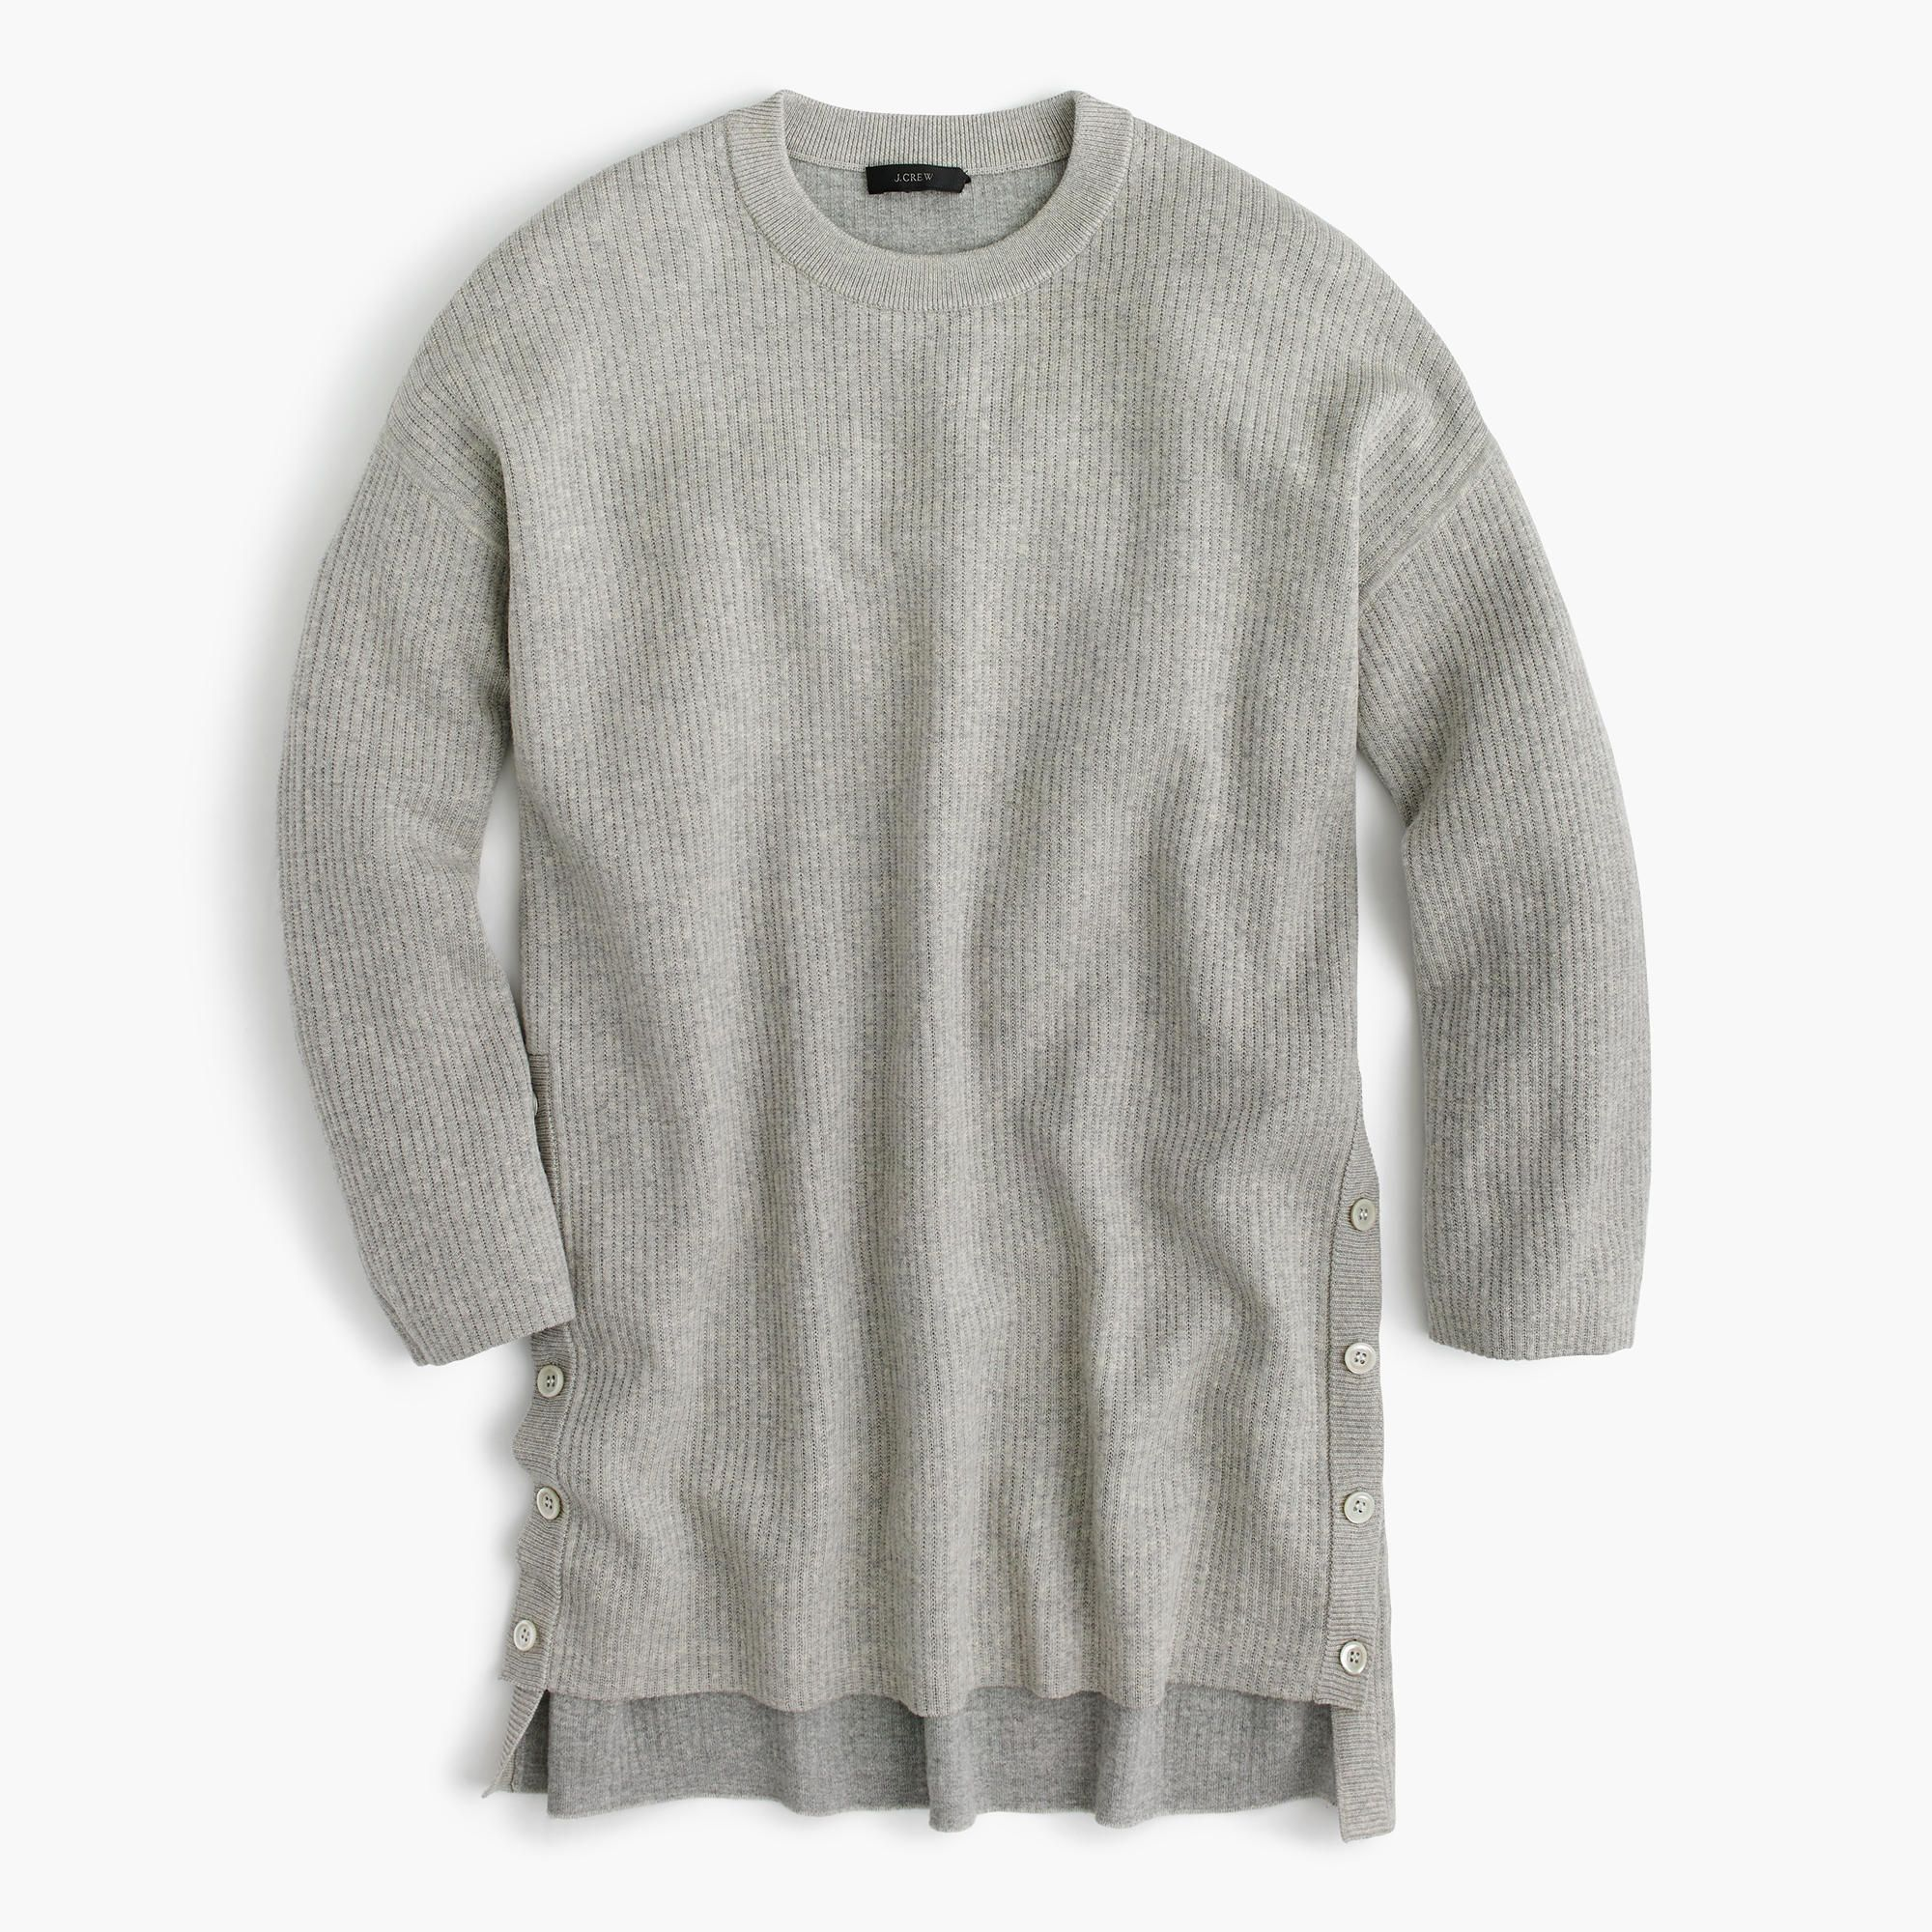 We made this oversized tunic sweater with merino wool on the ...